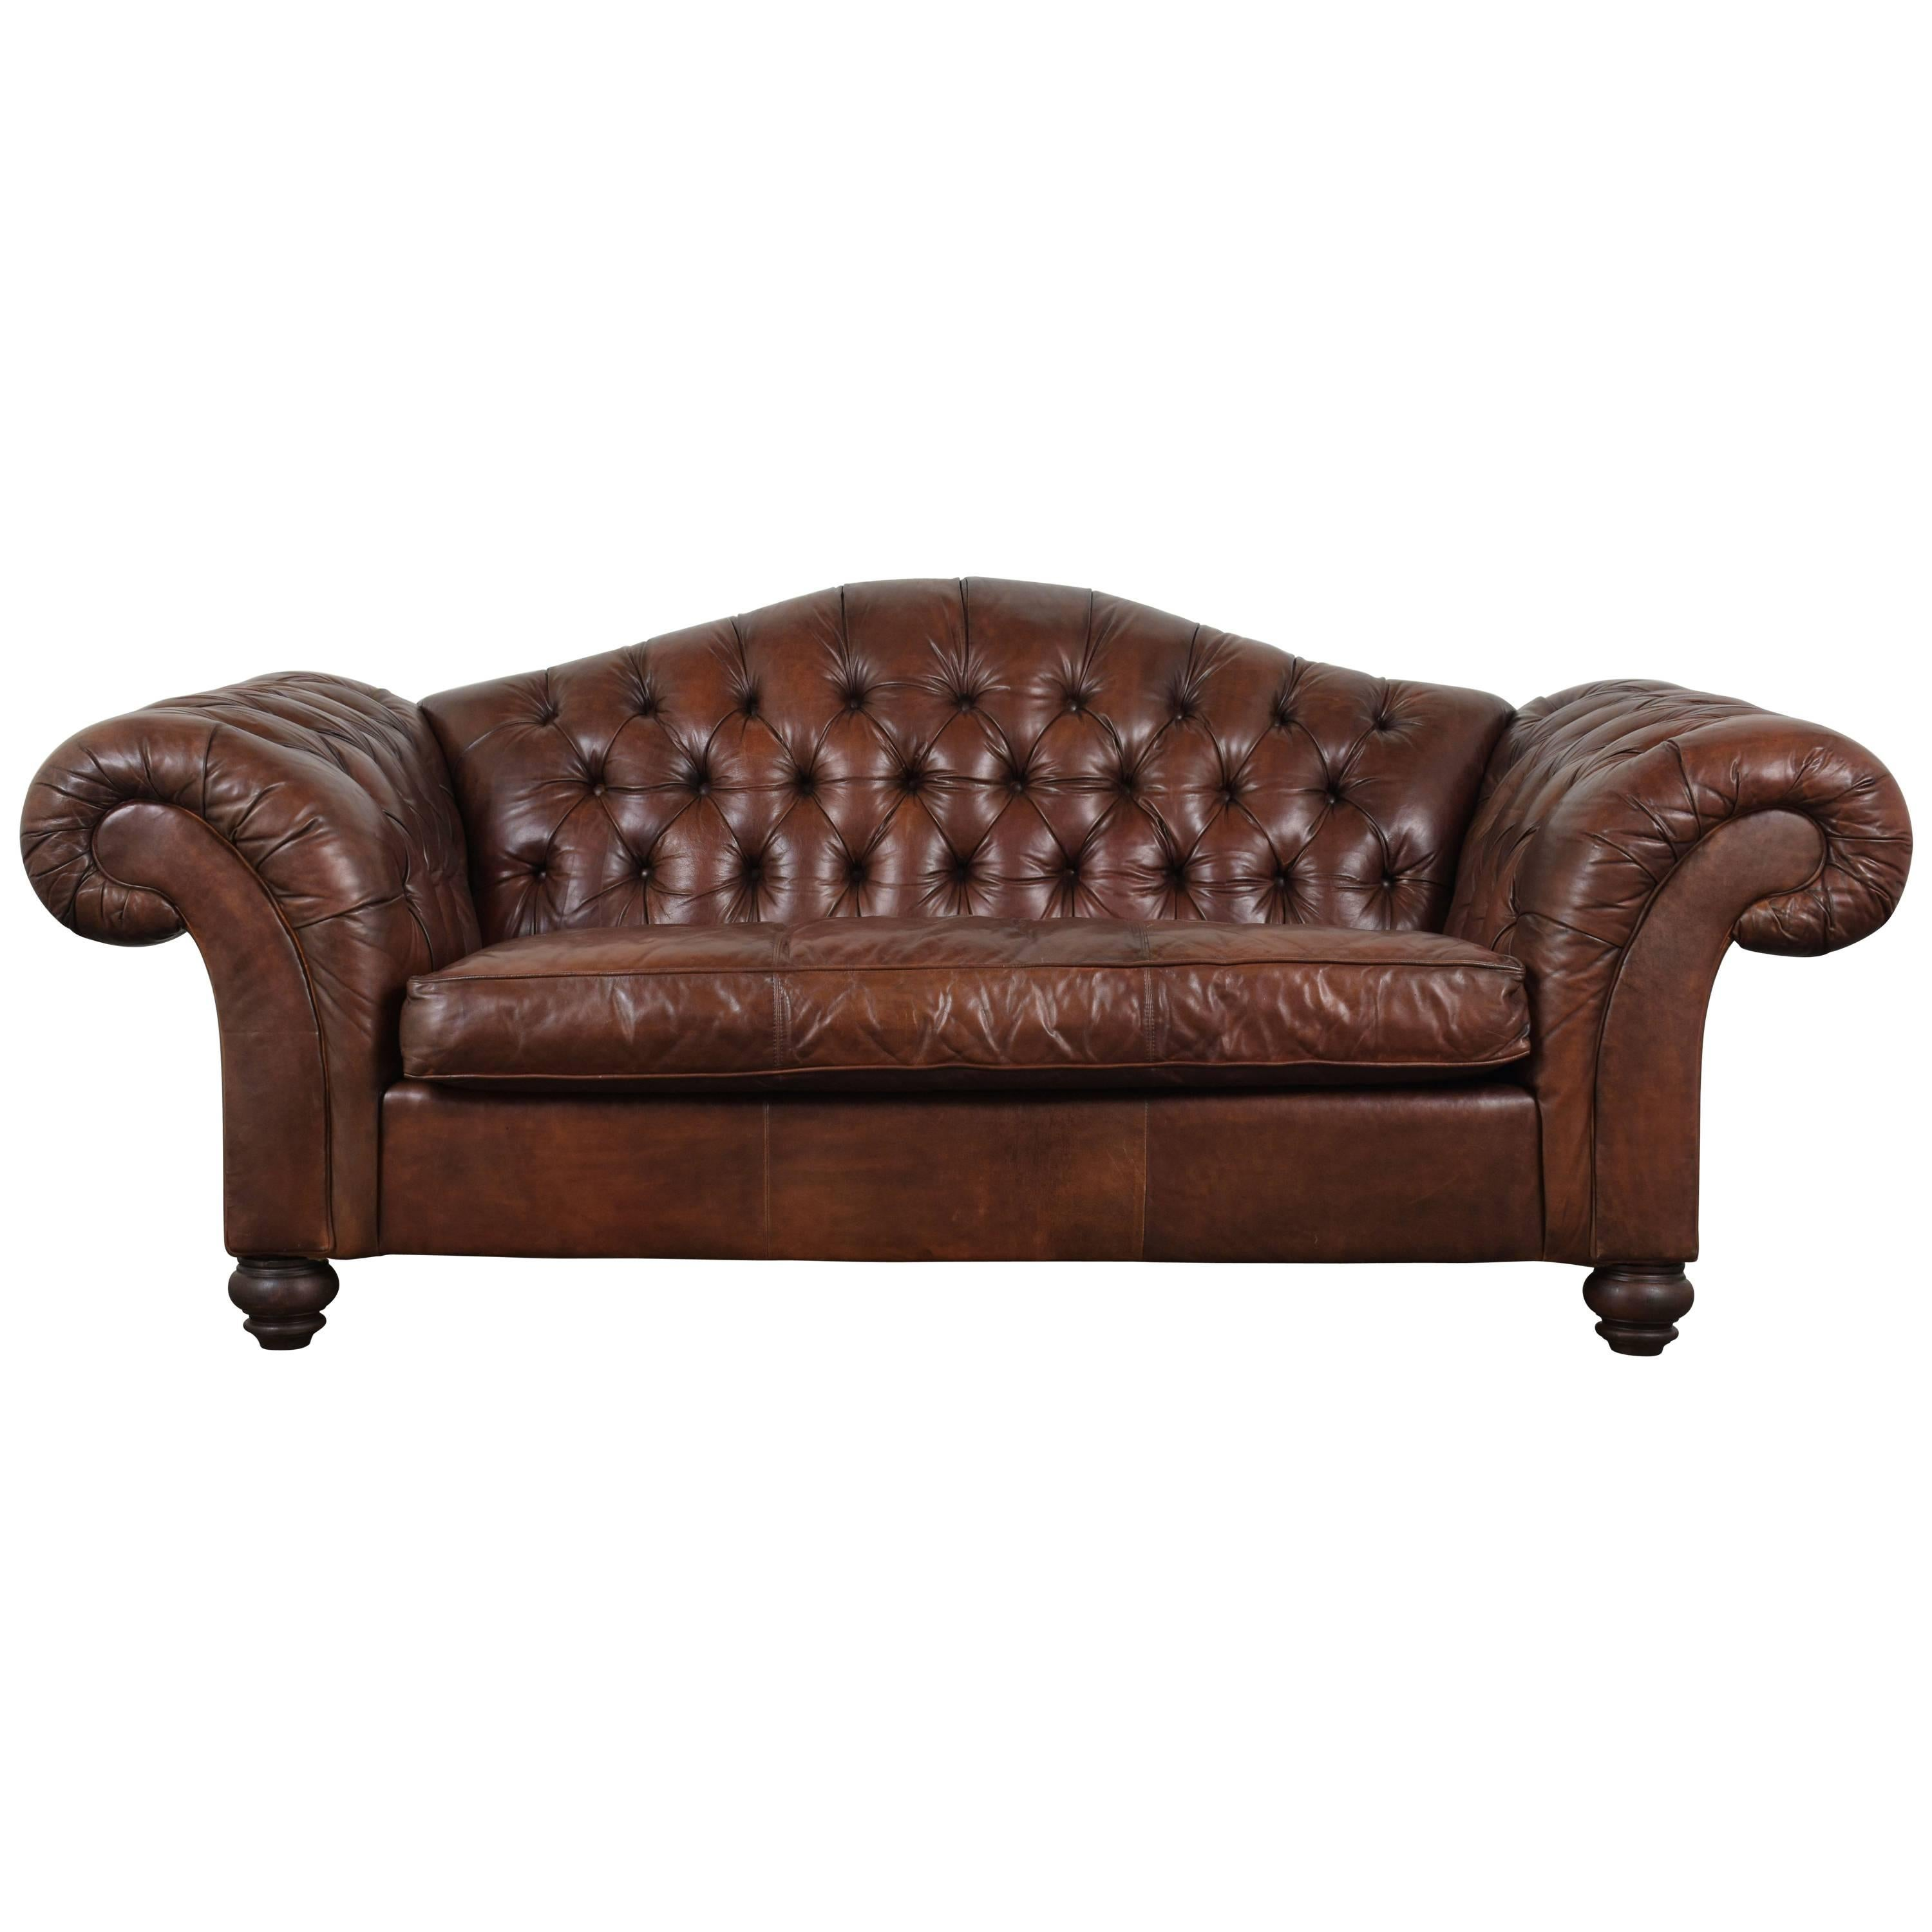 tufted brown leather sofa muji bean review henredon rolled arm english style button hickory chesterfield